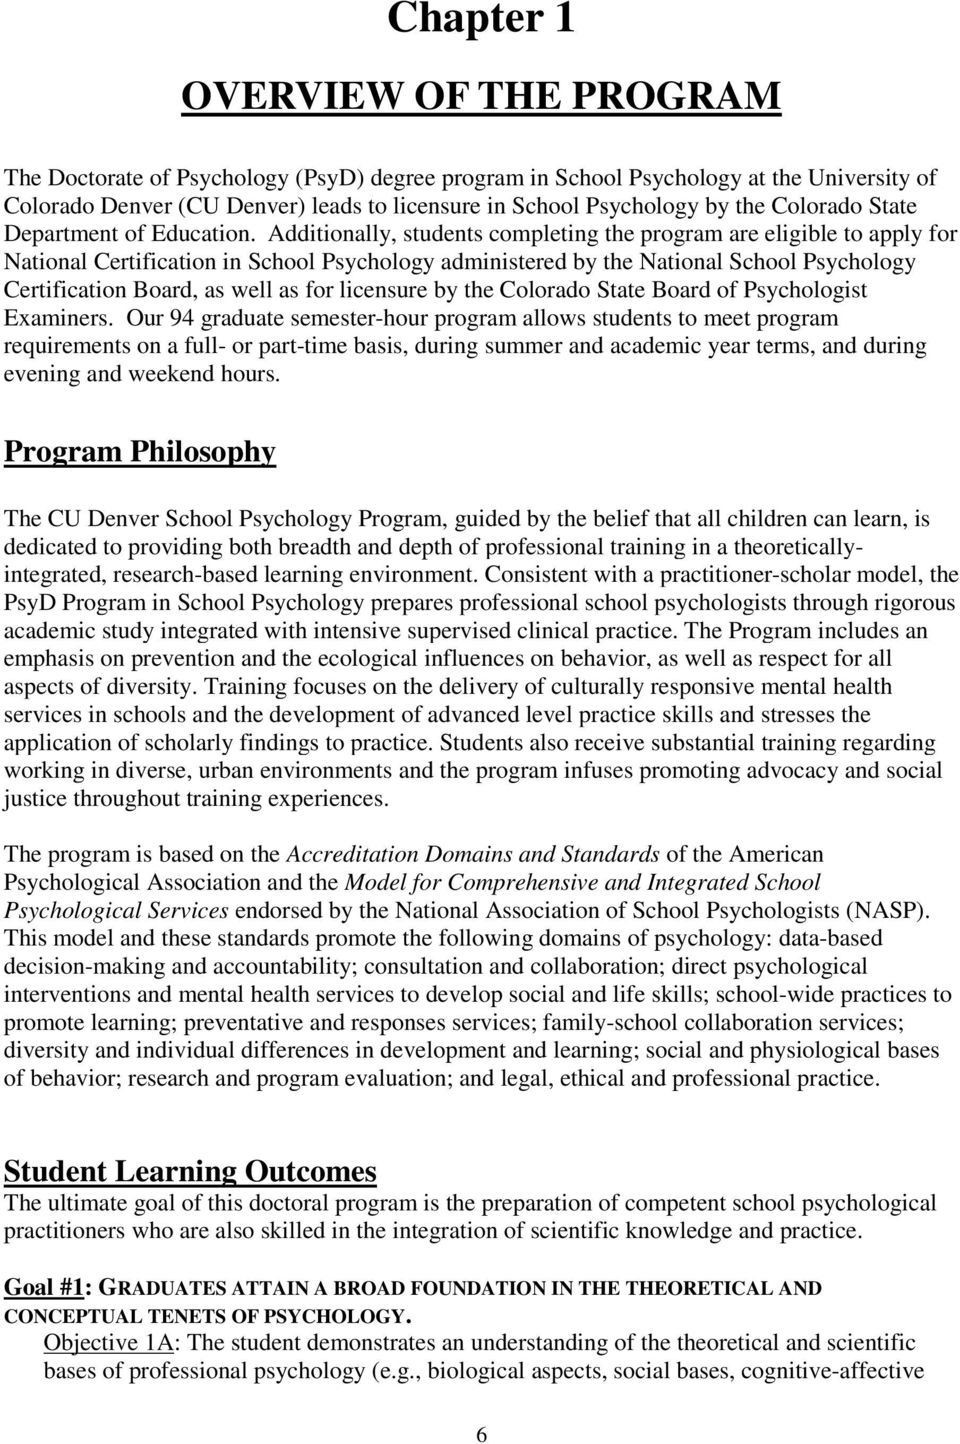 Additionally, students completing the program are eligible to apply for National Certification in School Psychology administered by the National School Psychology Certification Board, as well as for